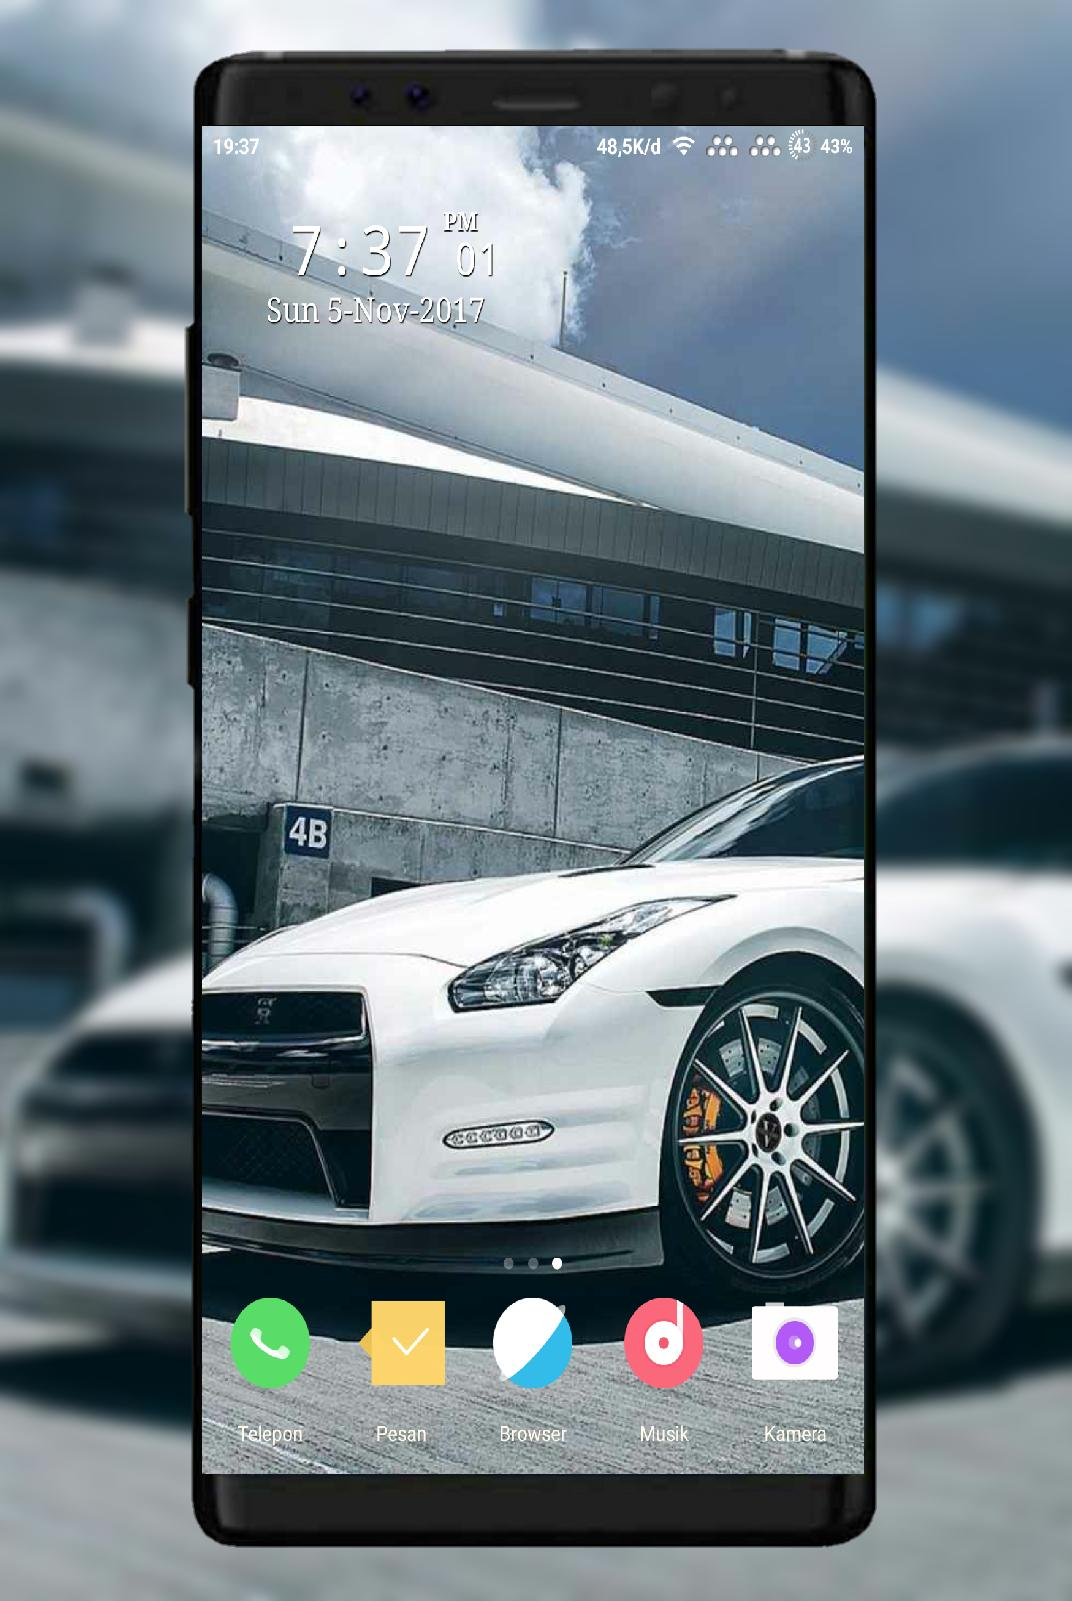 Gtr Wallpaper For Android Apk Download